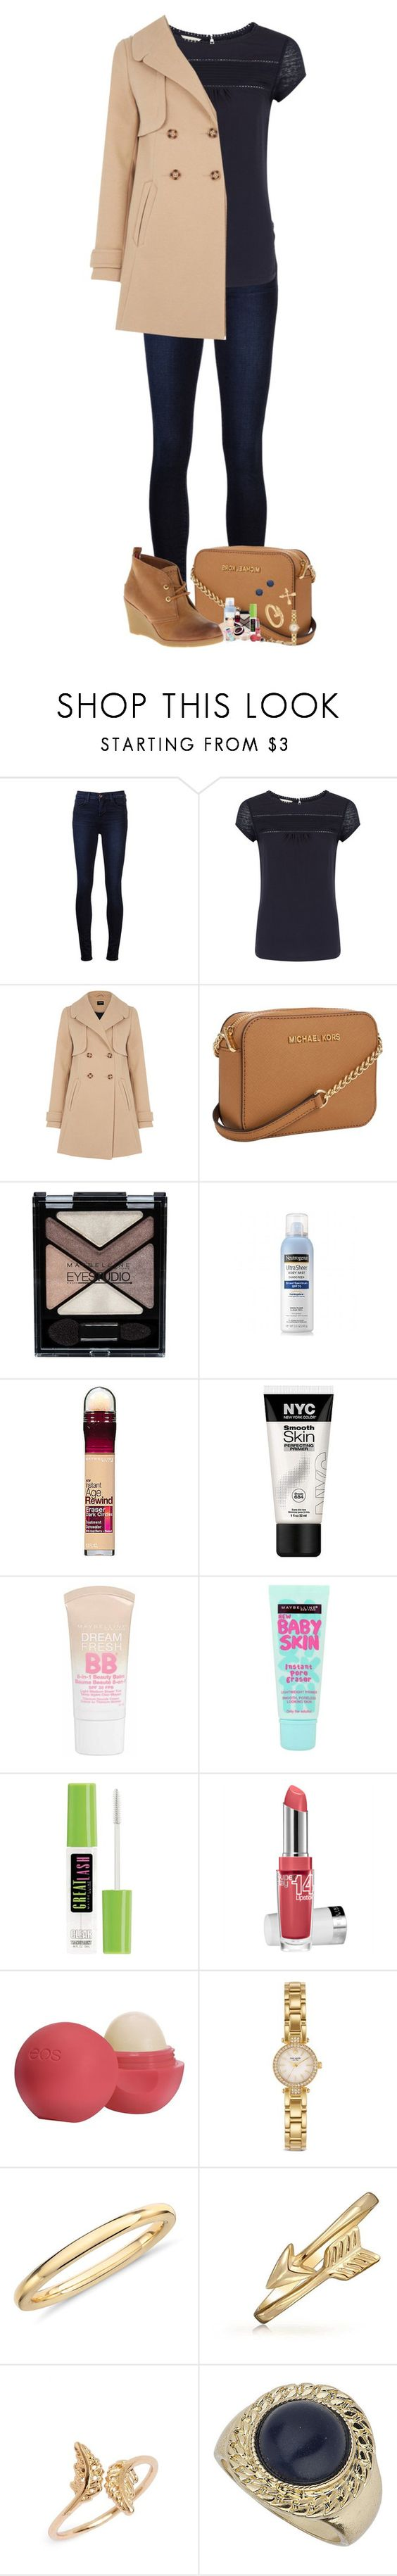 """She Wolf Queen"" by nessiecullen2286 ❤ liked on Polyvore featuring J Brand, Monsoon, Oasis, Michael Kors, Maybelline, Sperry Top-Sider, Neutrogena, Eos, Kate Spade and Blue Nile"